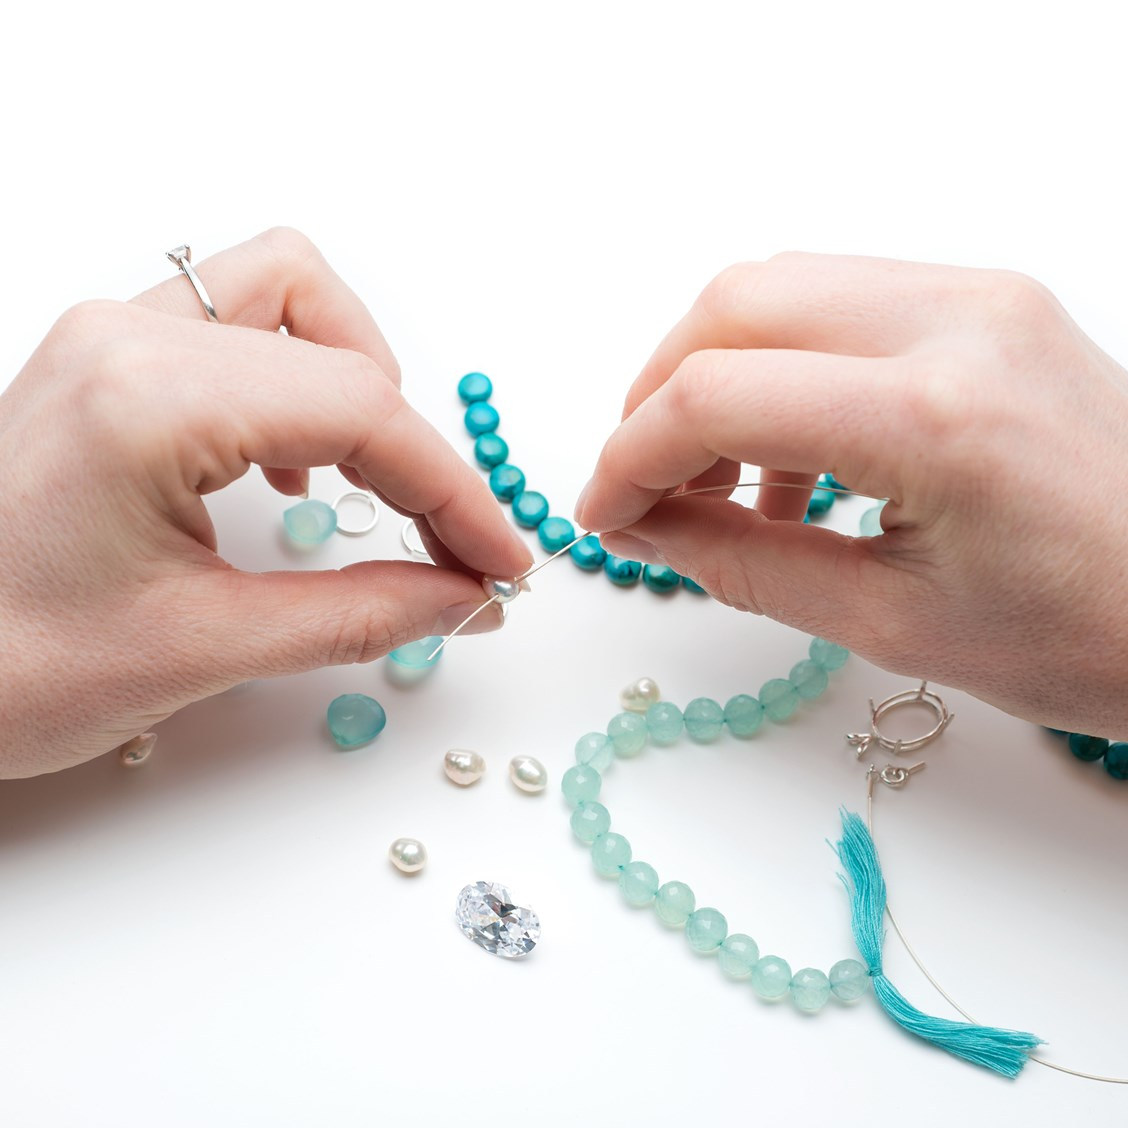 How To String Beads With Small Holes | Kernowcraft Regarding Most Up To Date Strings Of Beads Rings (Gallery 7 of 25)